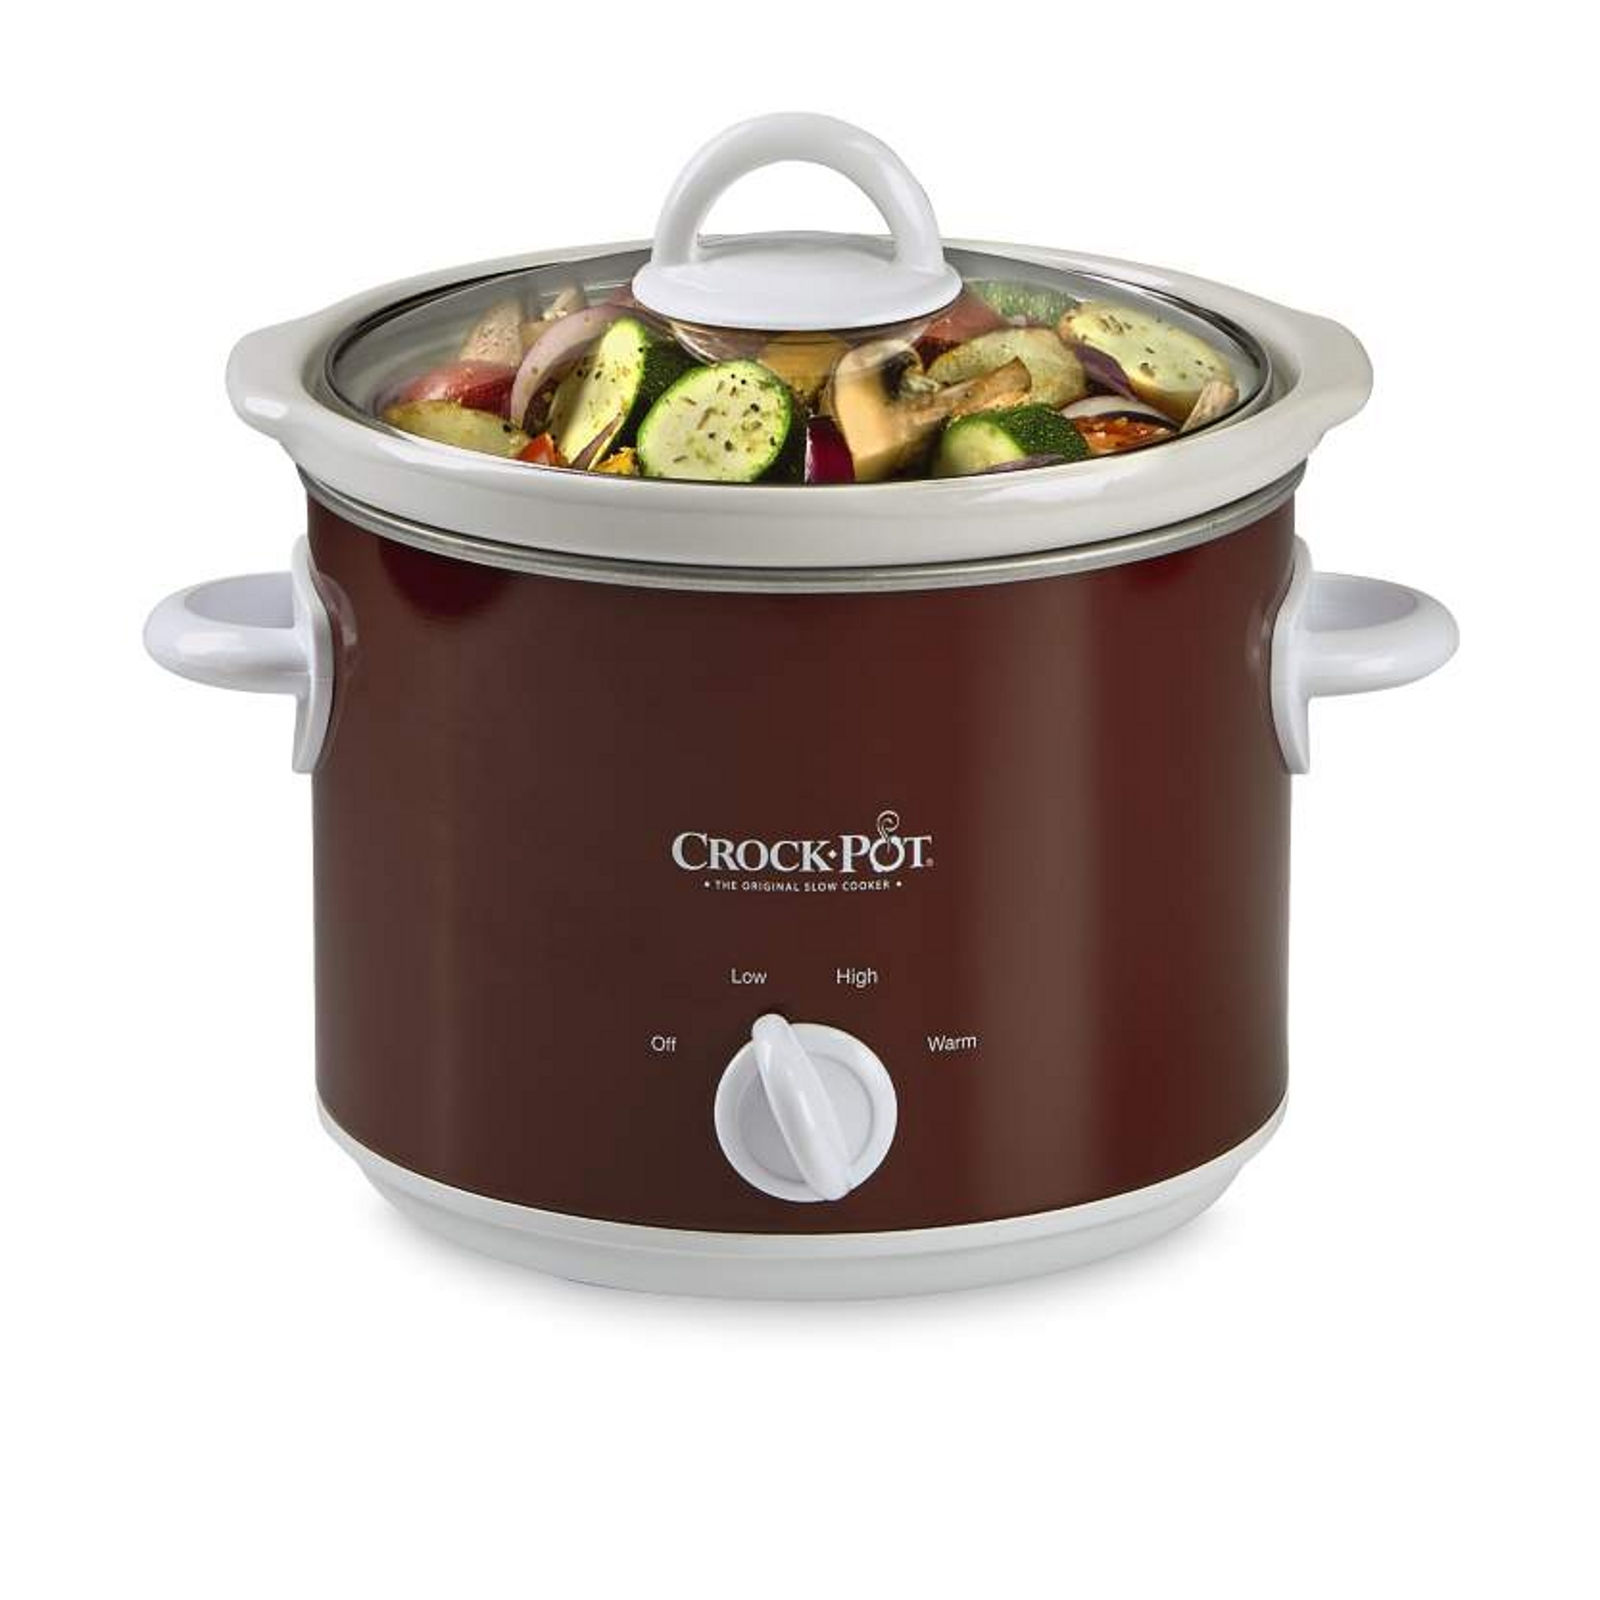 Crock Pot 3 Qt. Manual Slow Cooker, Red